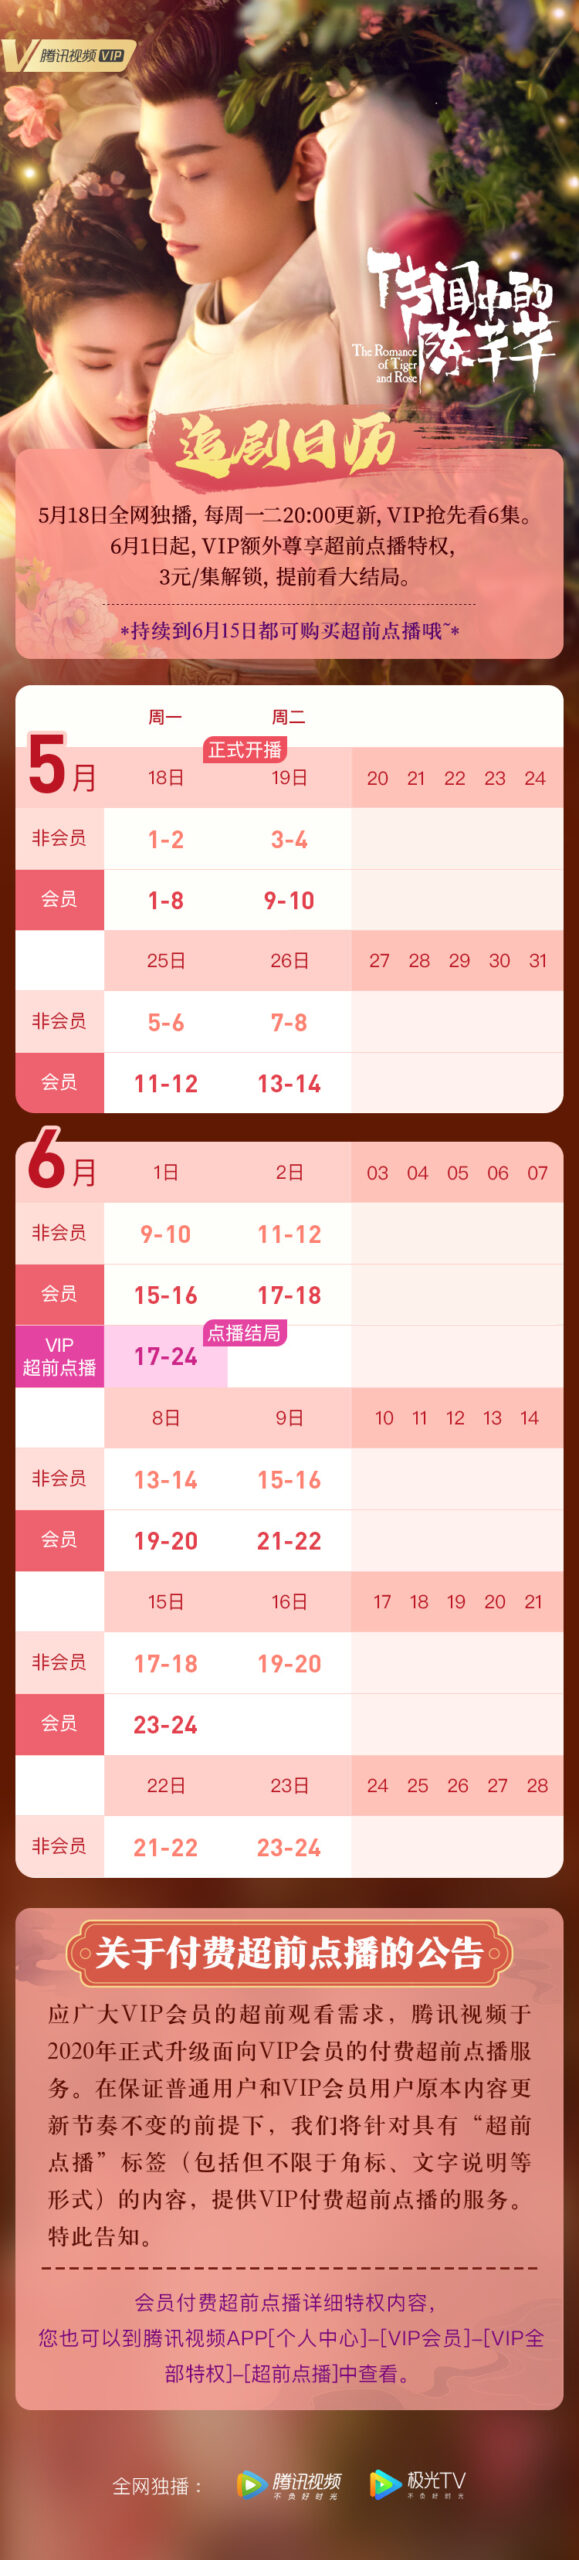 The Romance of Tiger and Rose Airing Calendar